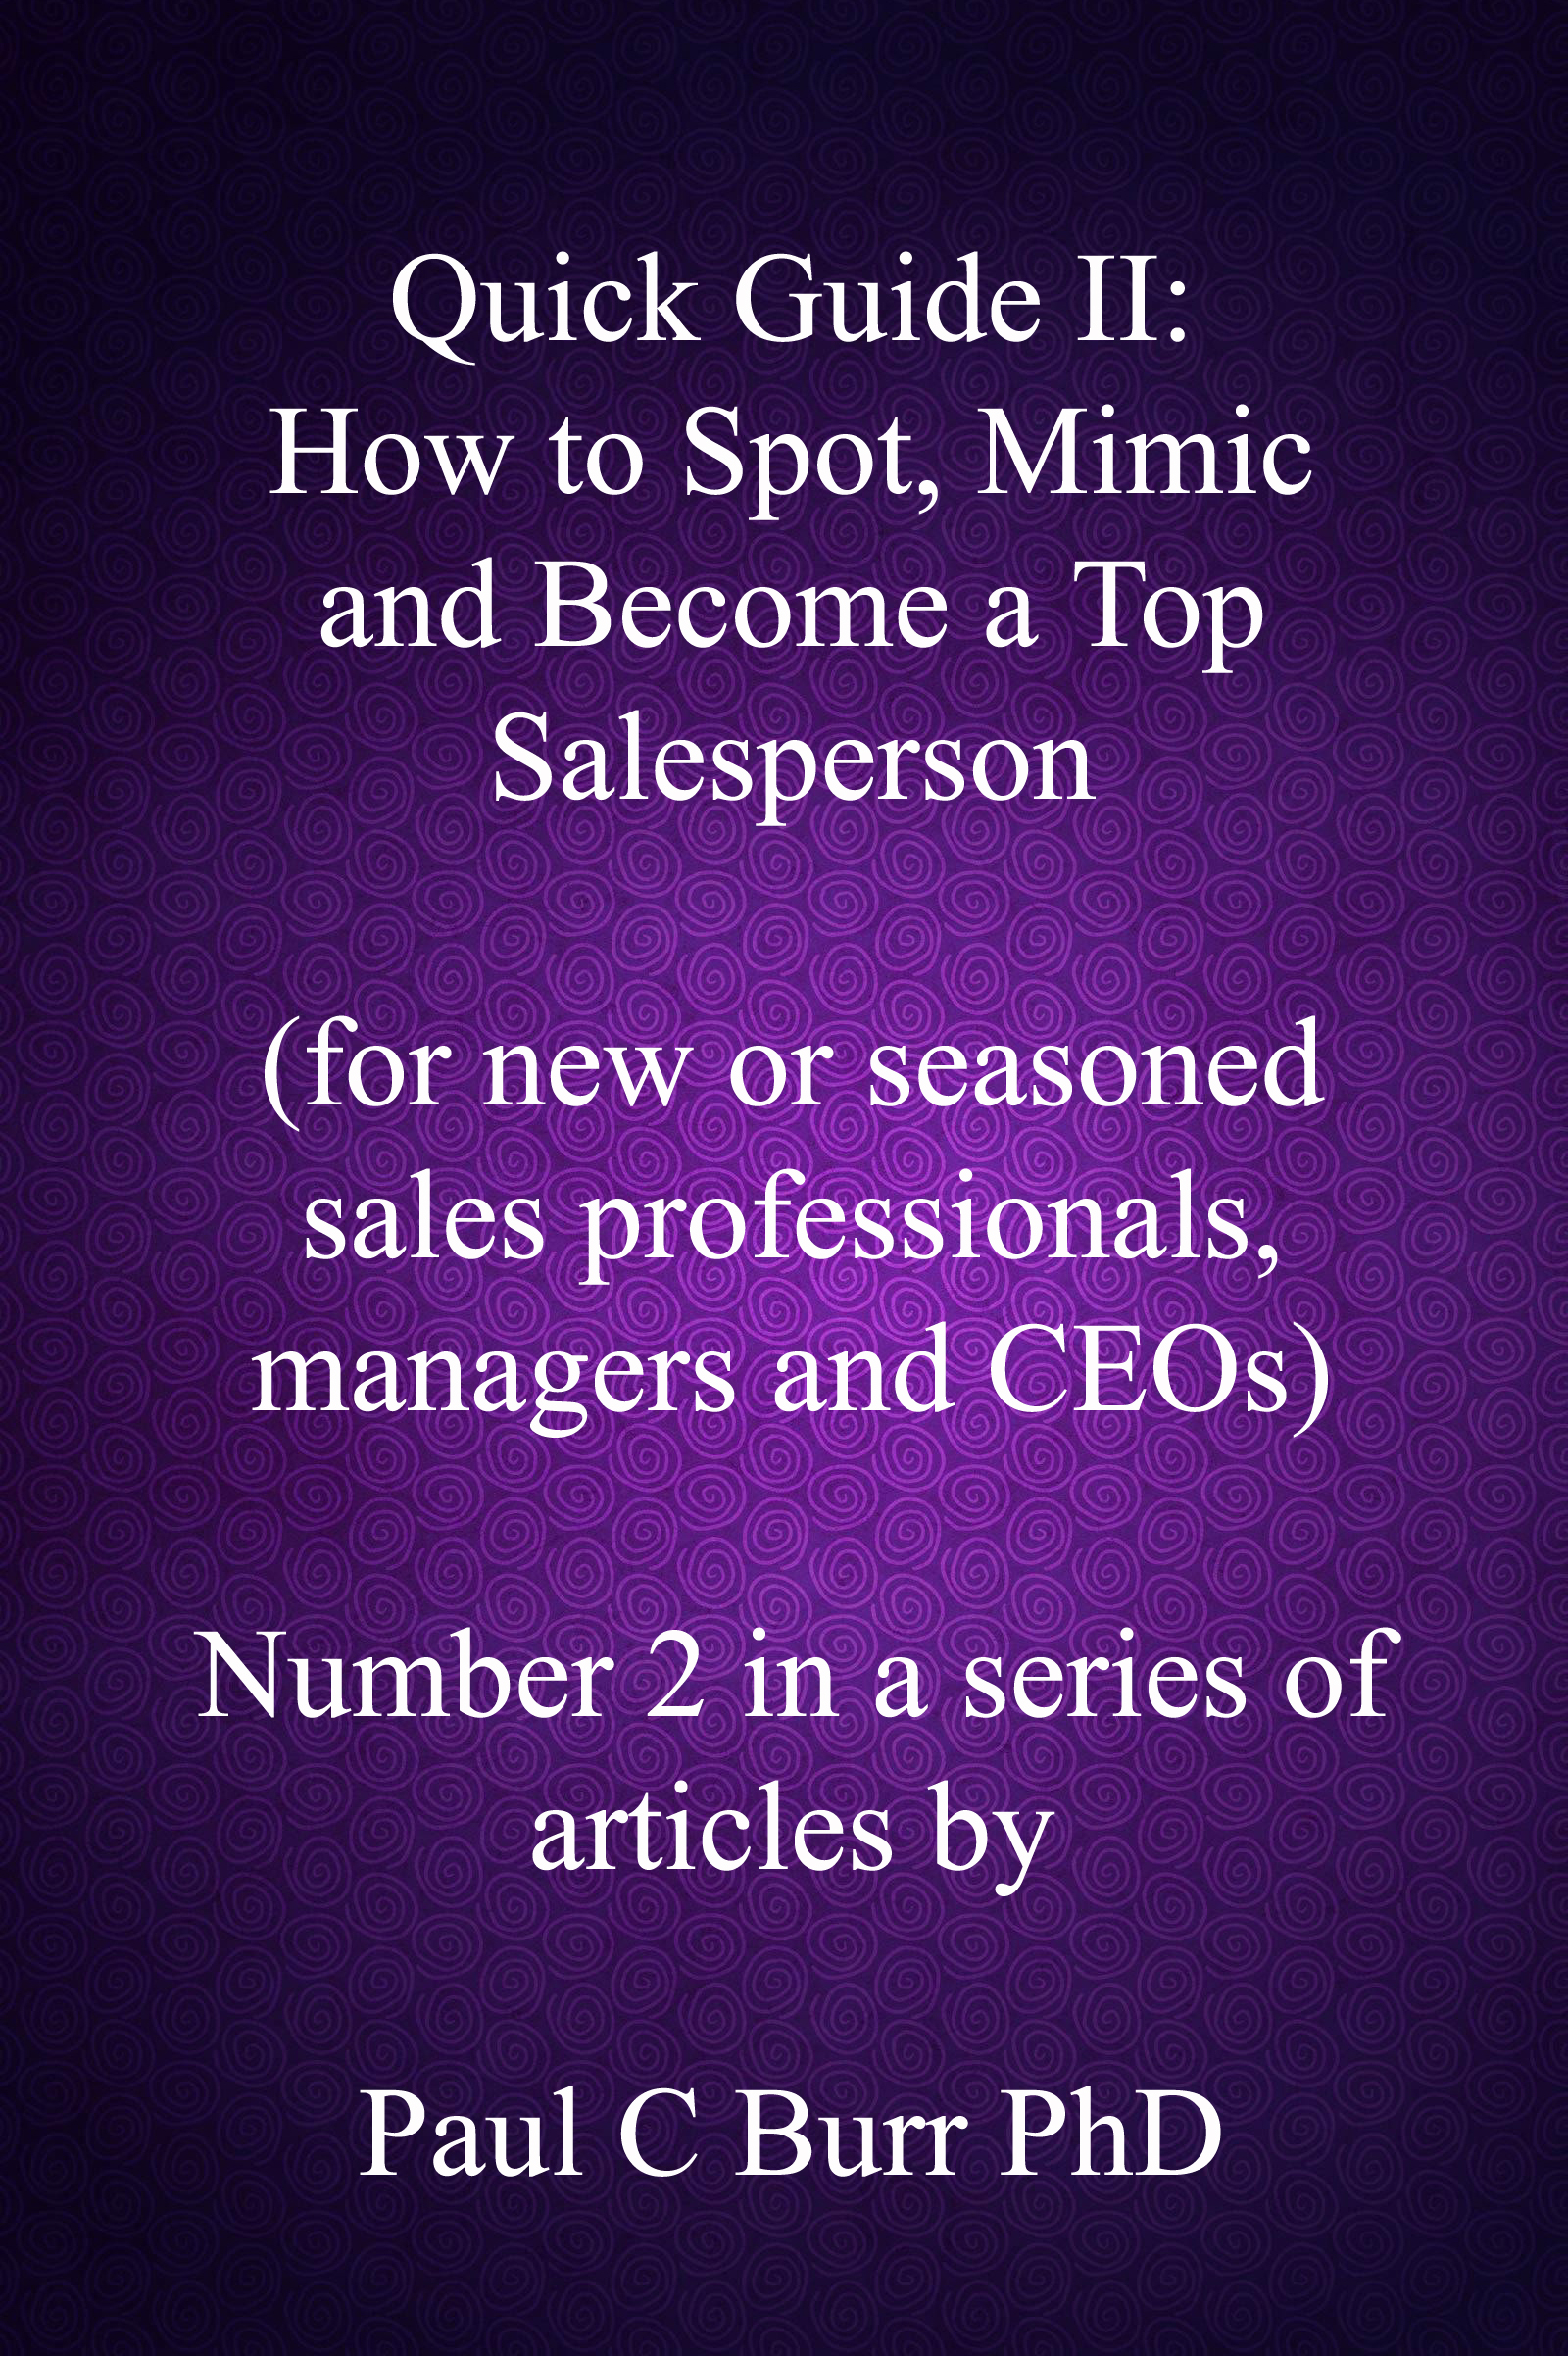 Quick Guide II - How to Spot, Mimic and Become a Top Salesperson, an Ebook  by Paul C Burr